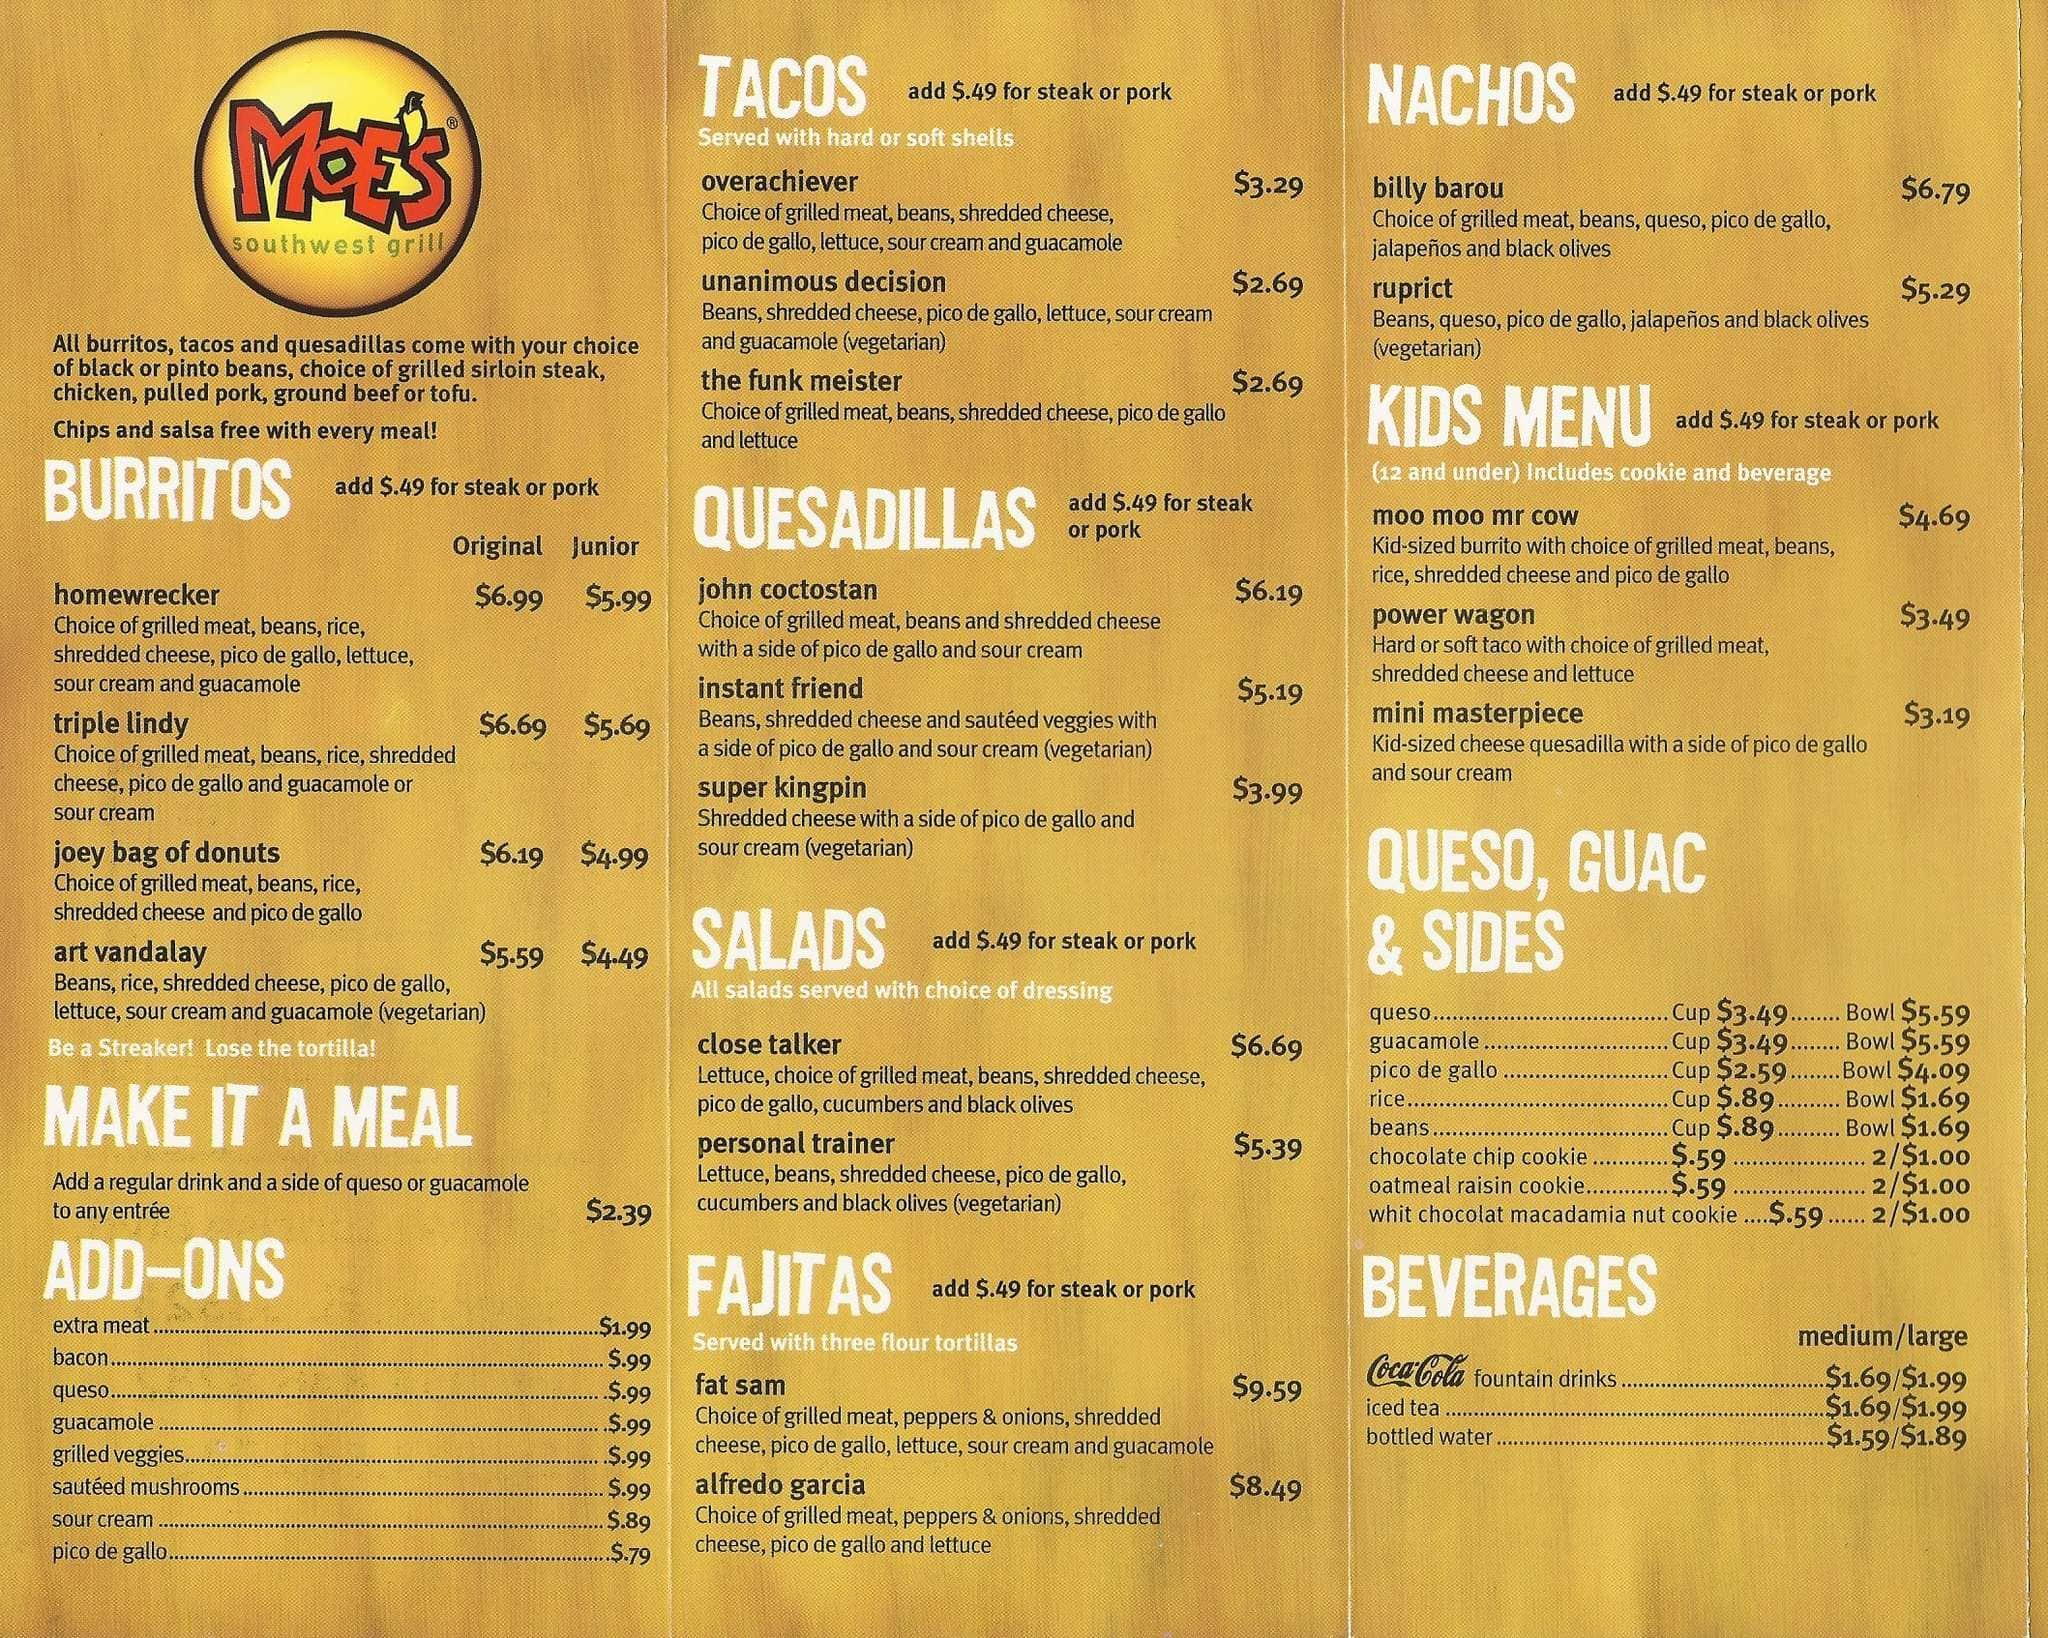 Menu at moe 39 s southwest grill restaurant sunrise w sunrise blvd - Moe southwest grill menu prices ...